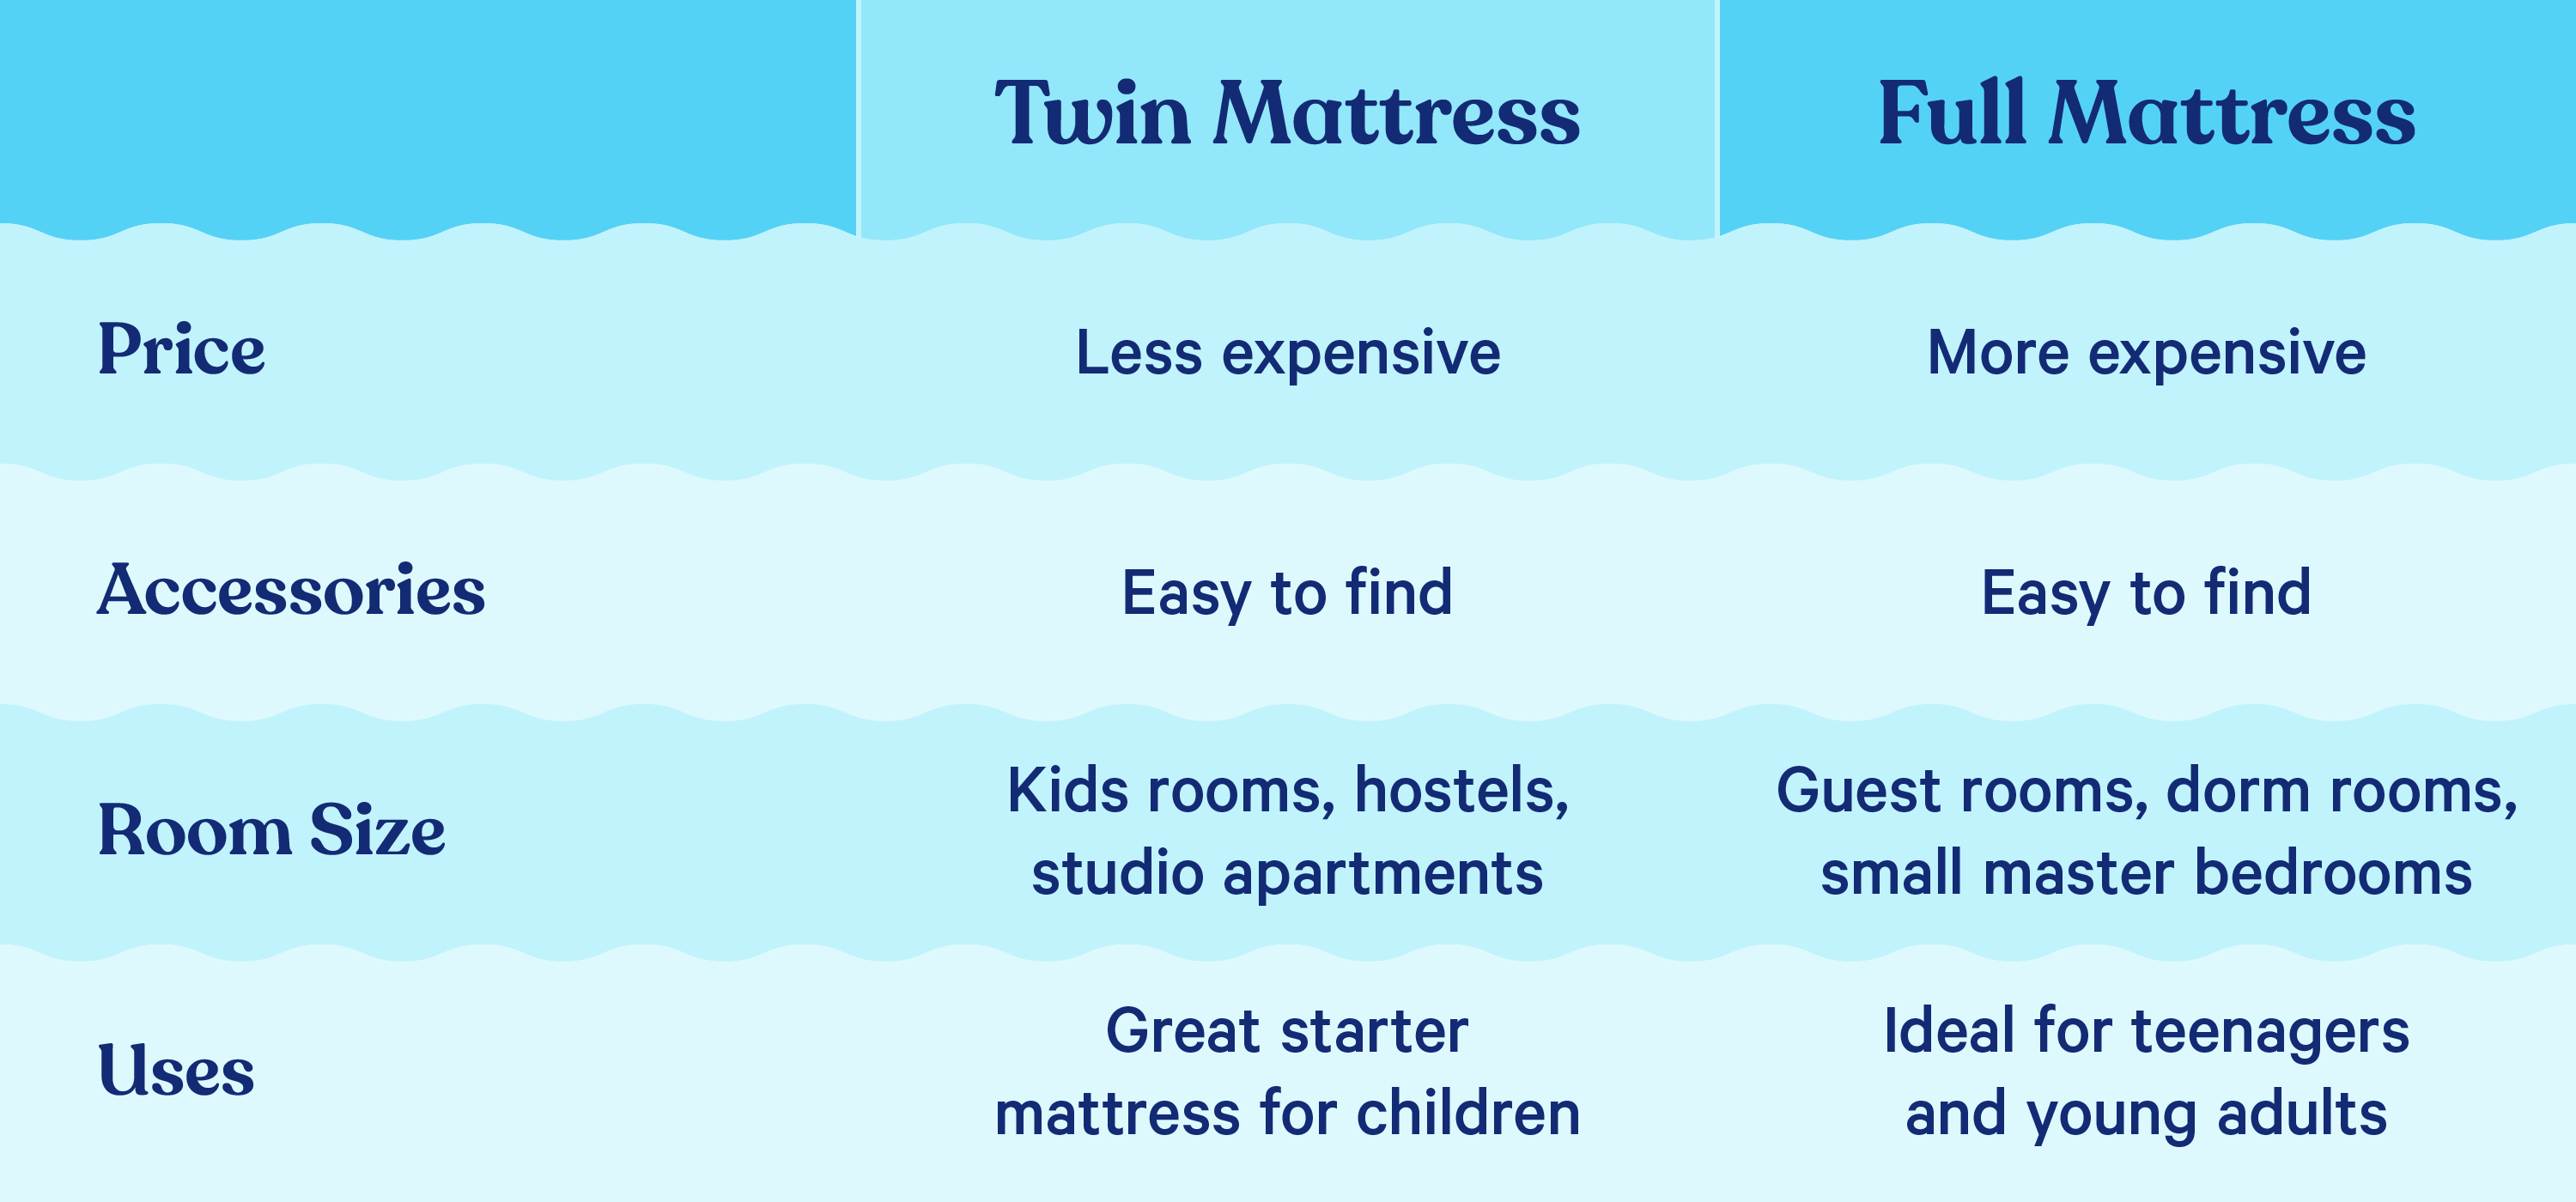 Chart showing differences between Full and Twin Mattresses (Price, Accessories, Room Size, and Uses)